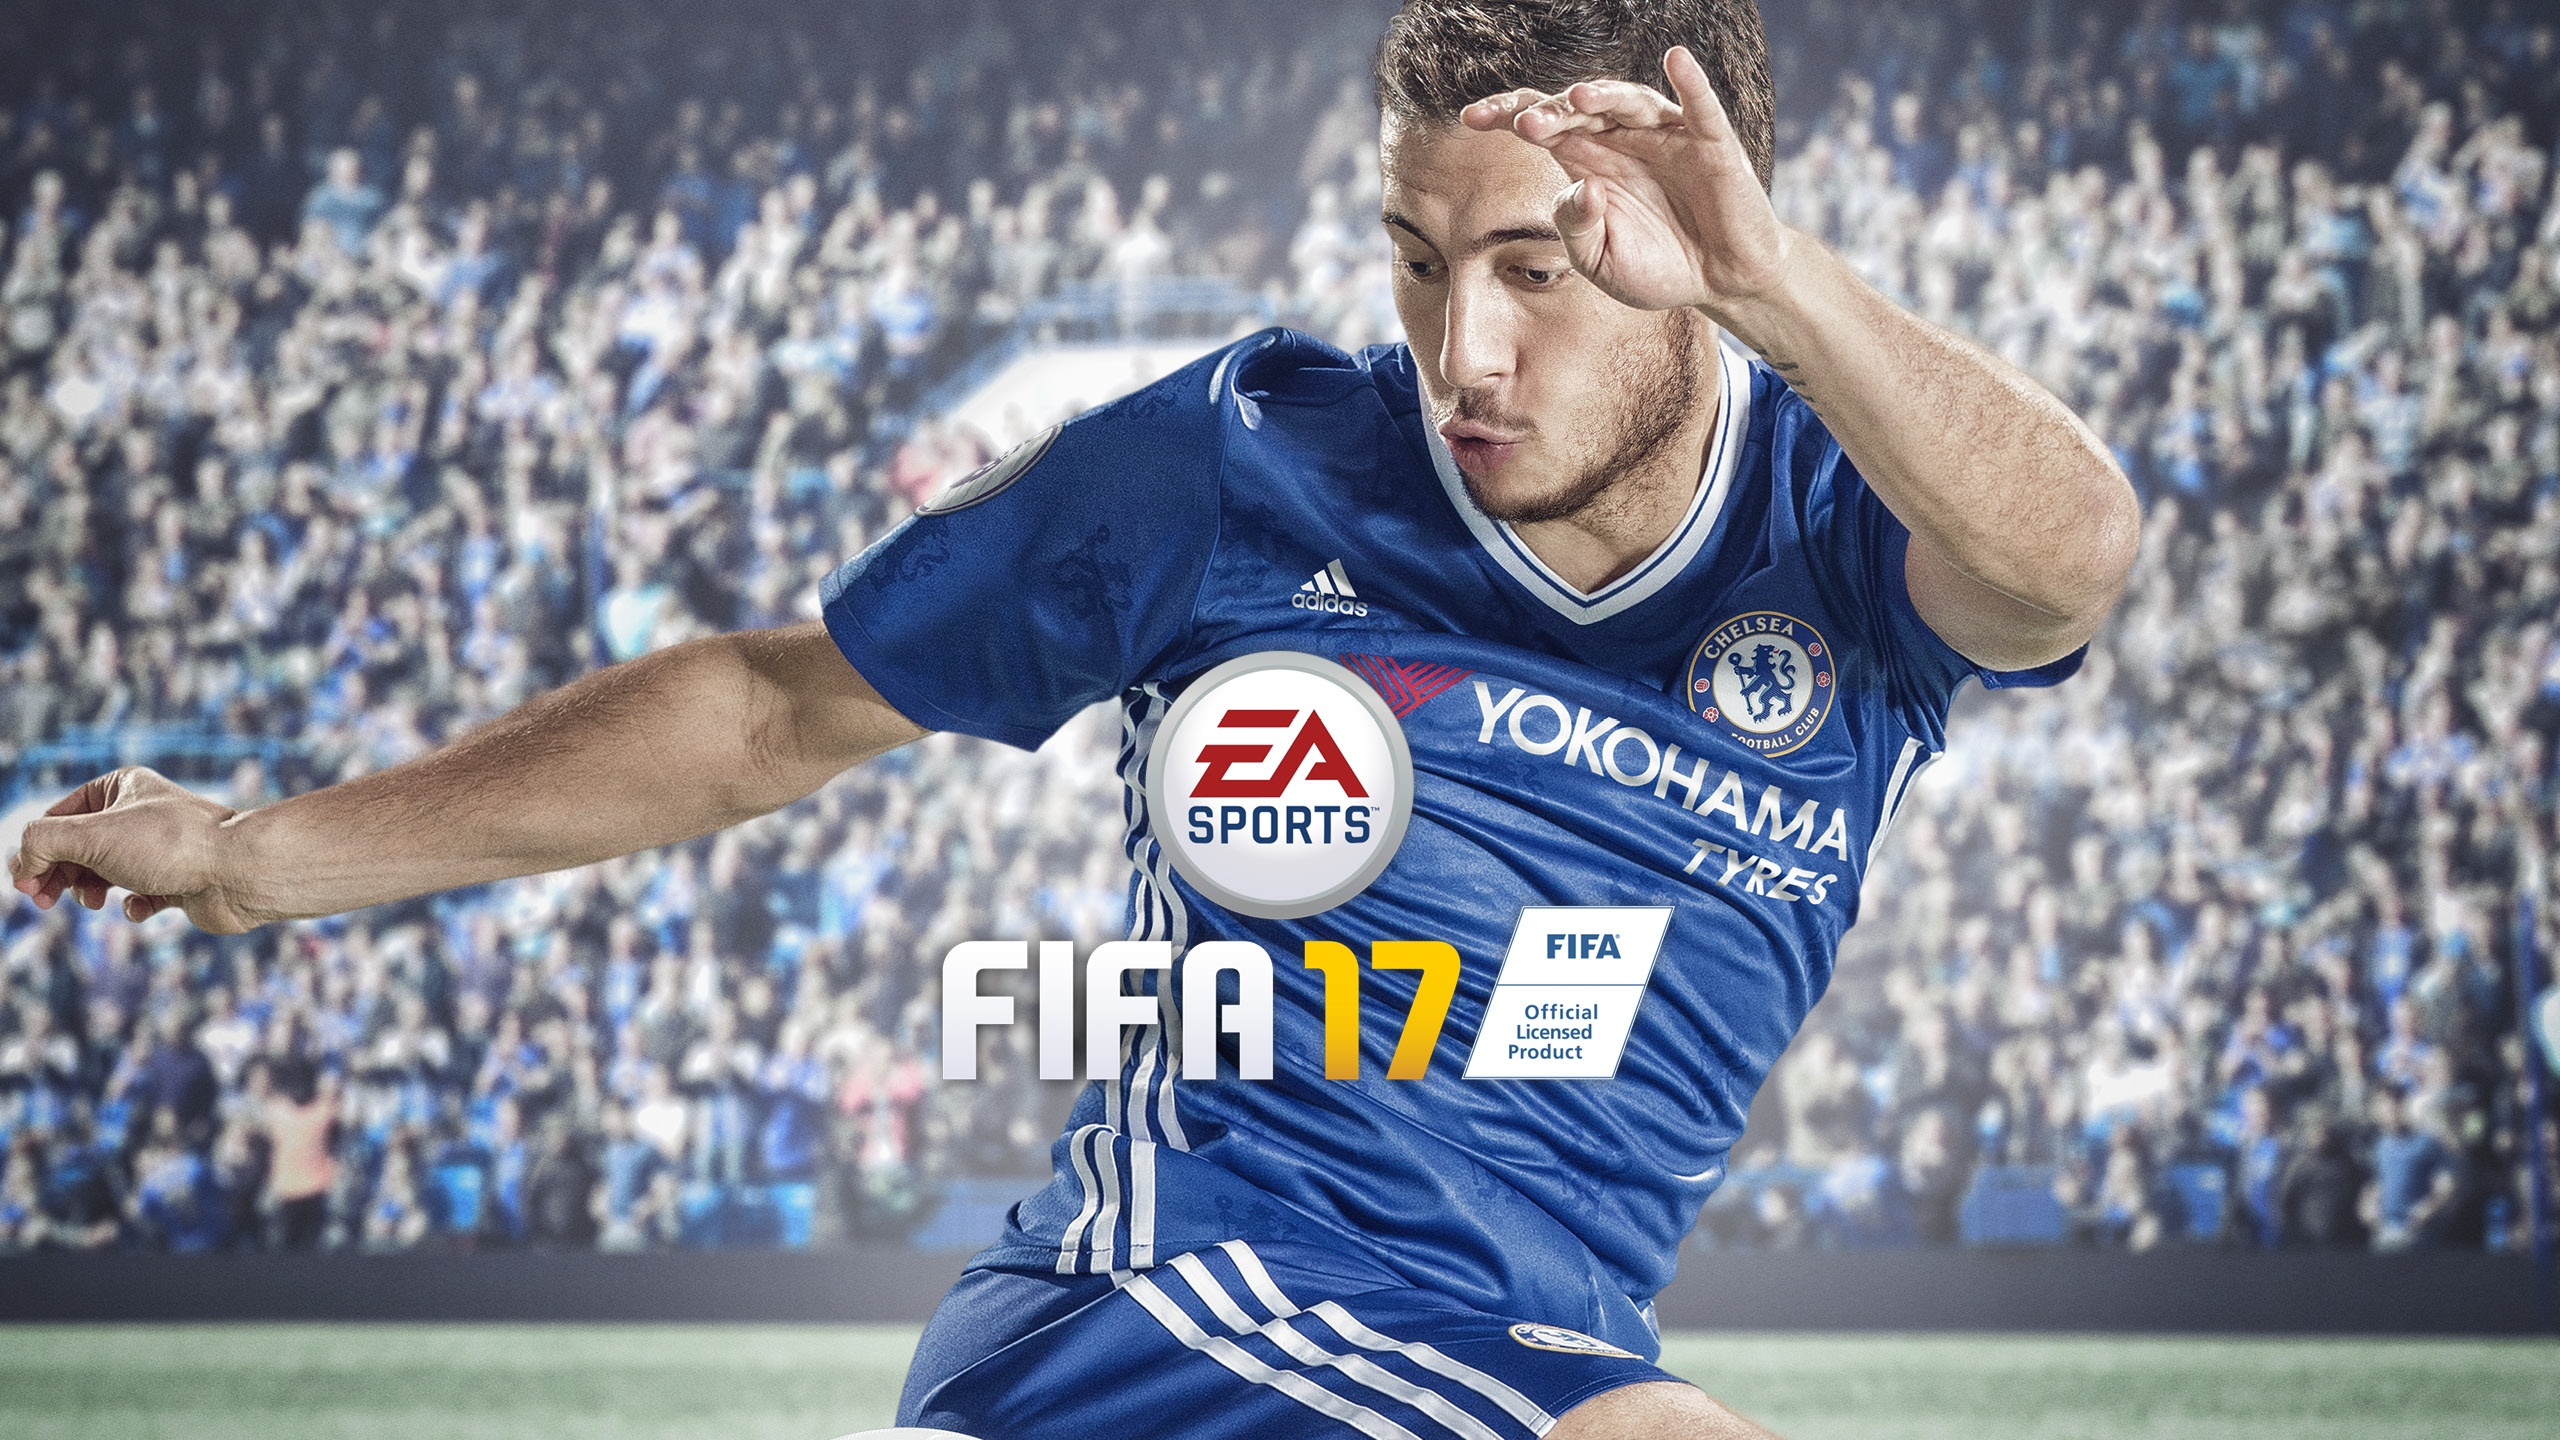 Eden Hazard FIFA 17 Wallpapers